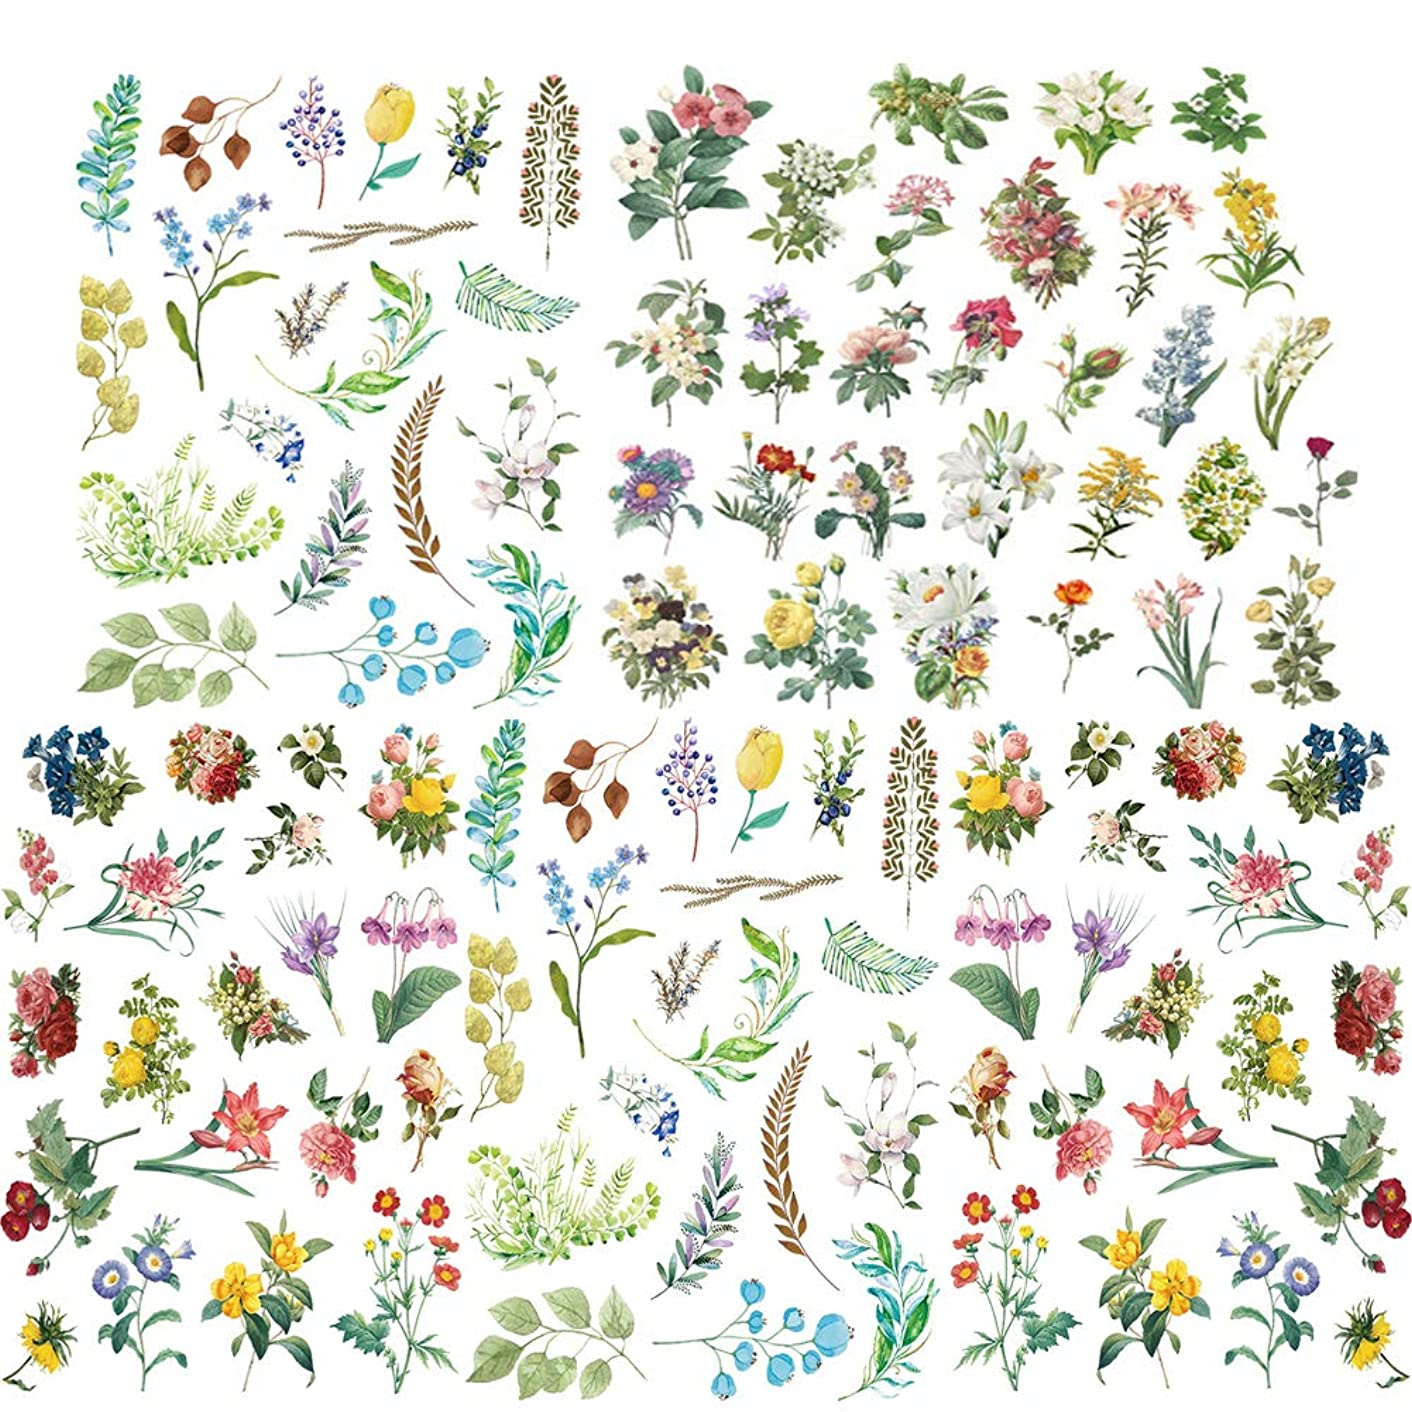 Jelacy Cute Flowers Stickers, Green Plant Leaves Flowers Stickers Set for DIY Arts and Decal Stickers Crafts,Laptop Stickers,Scrapbook Stickers,Scrapbook, Diary, Kid Craft [140PCS]